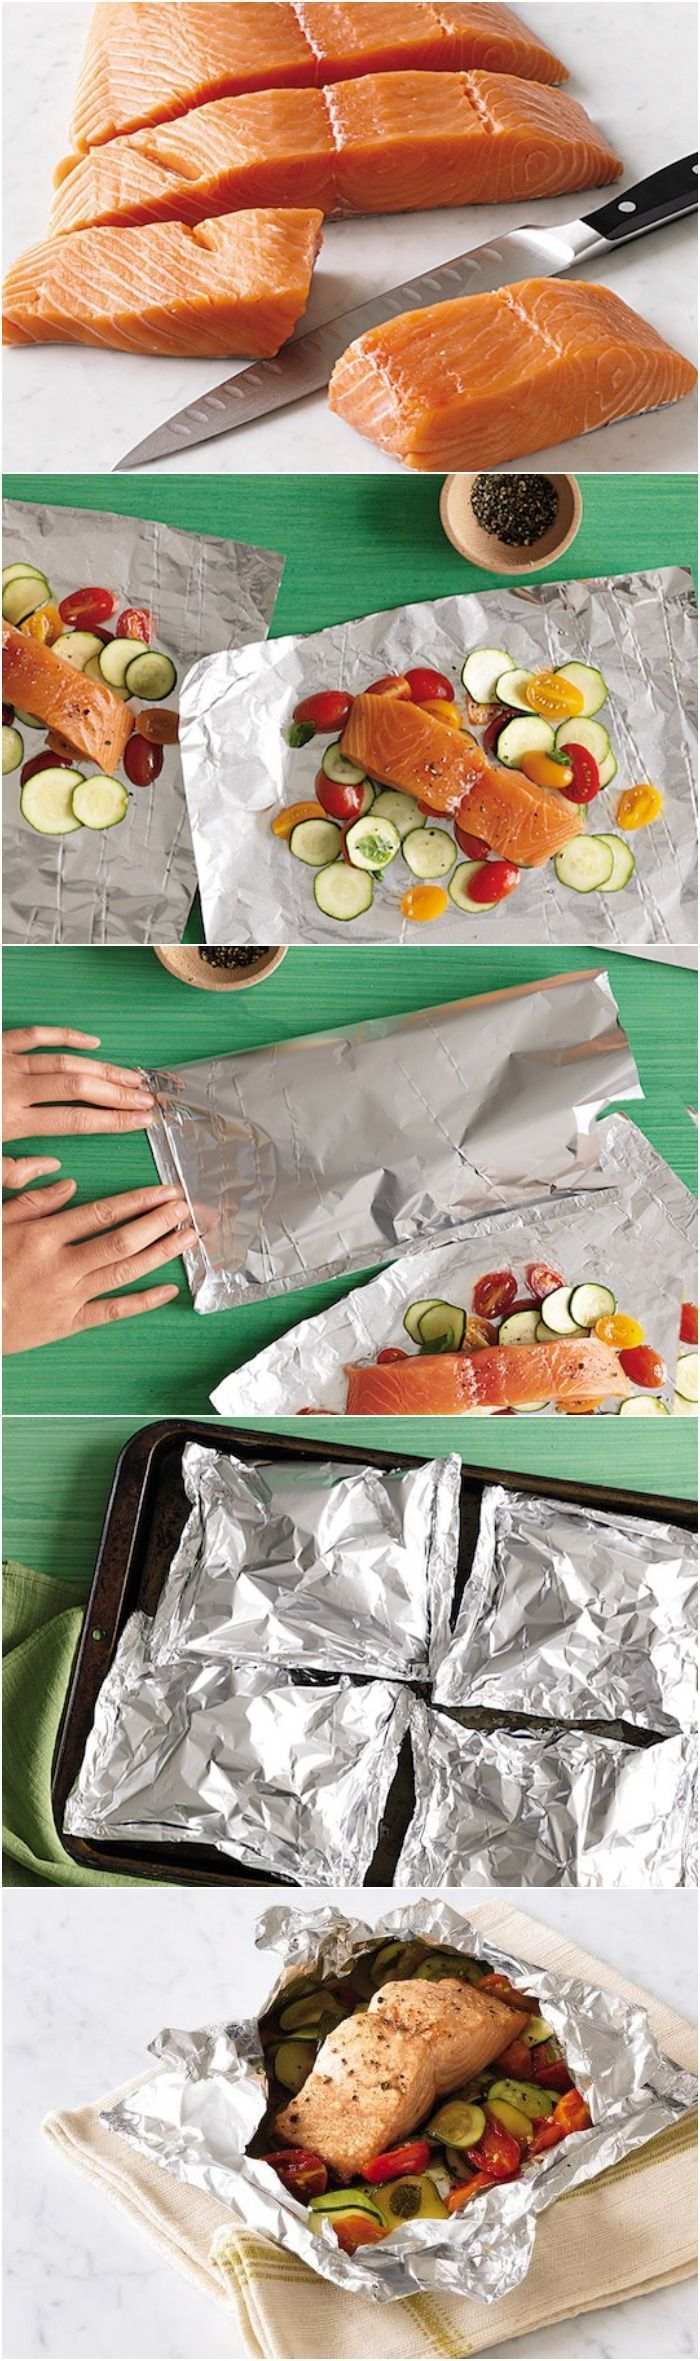 Healthy Steamed Salmon Recipe With Veggies with Zucchini, Tomato, and Basil or Spinach with Lemon - ofen baked: Juicier salmon and less calories!